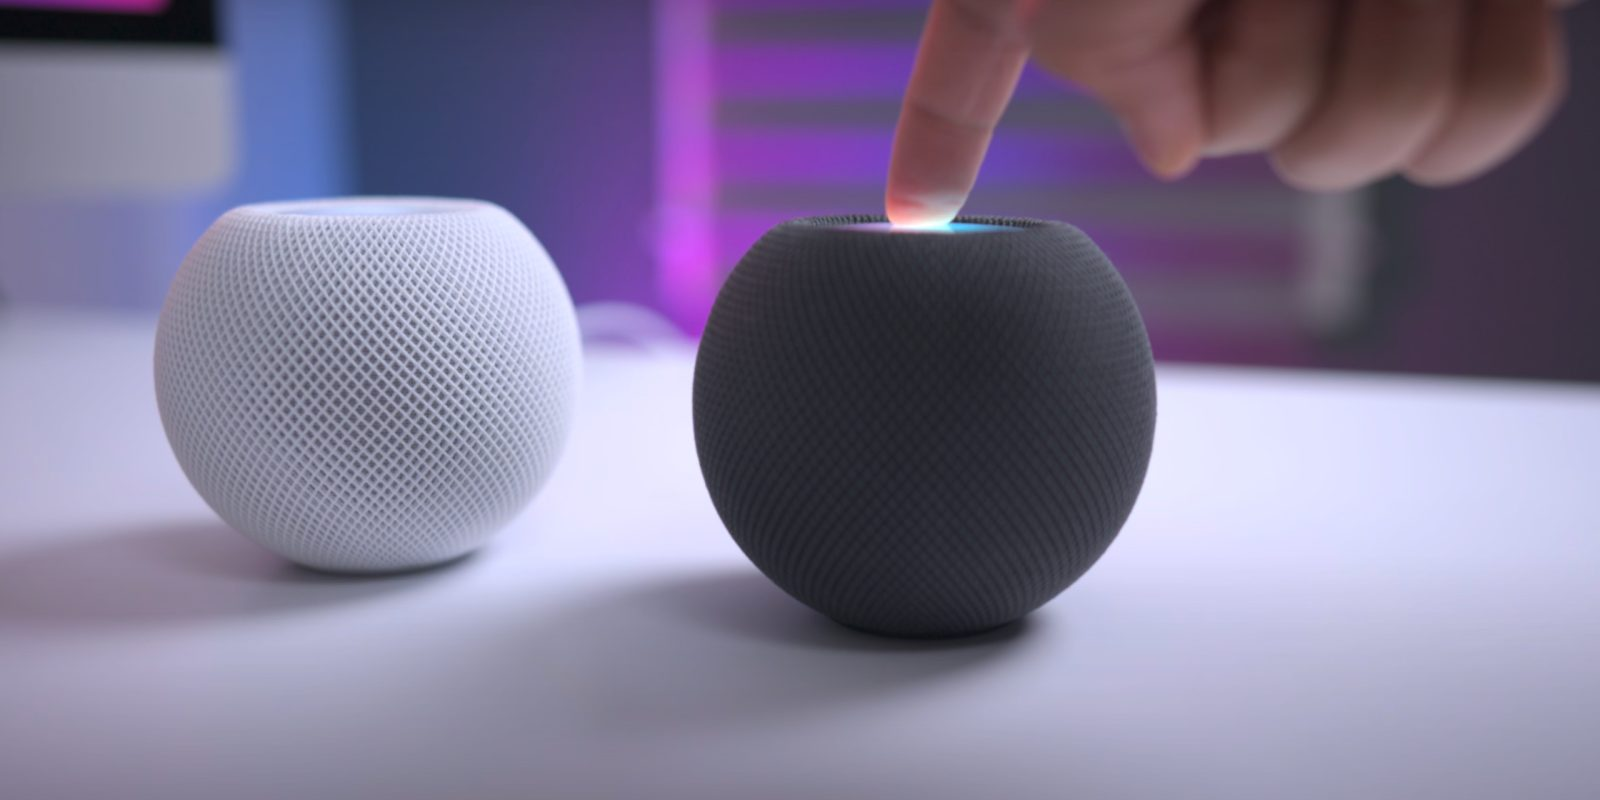 Thursday's best deals: HomePod mini $89, mophie Apple charging stations $95, more